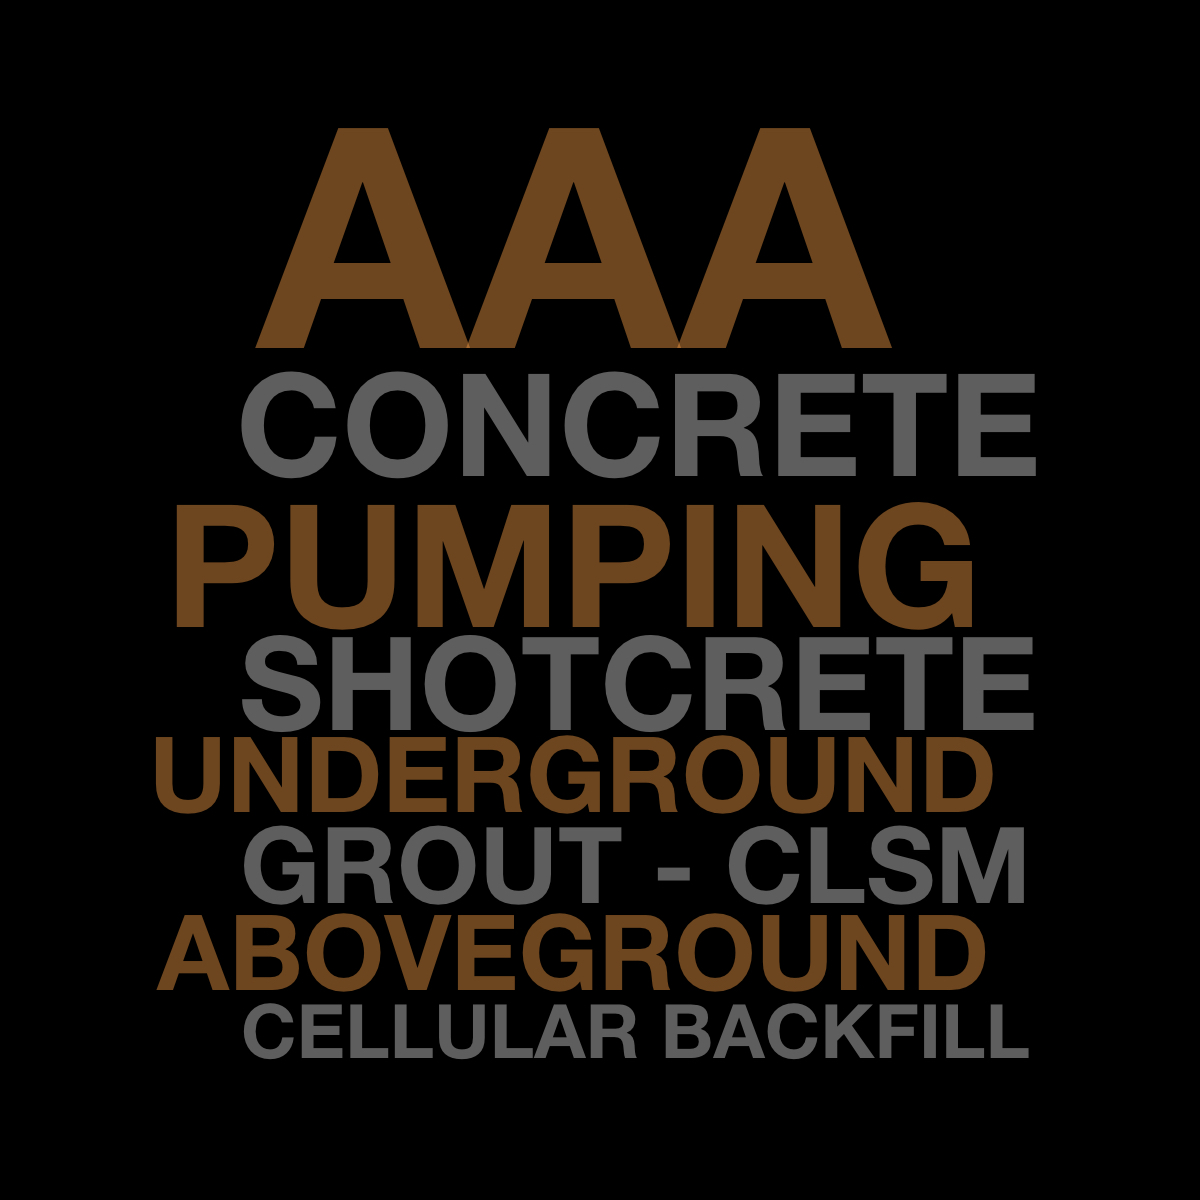 AAA Concrete Pumping Shotcrete Underground Grout CLSM Above Ground Cellular Backfill